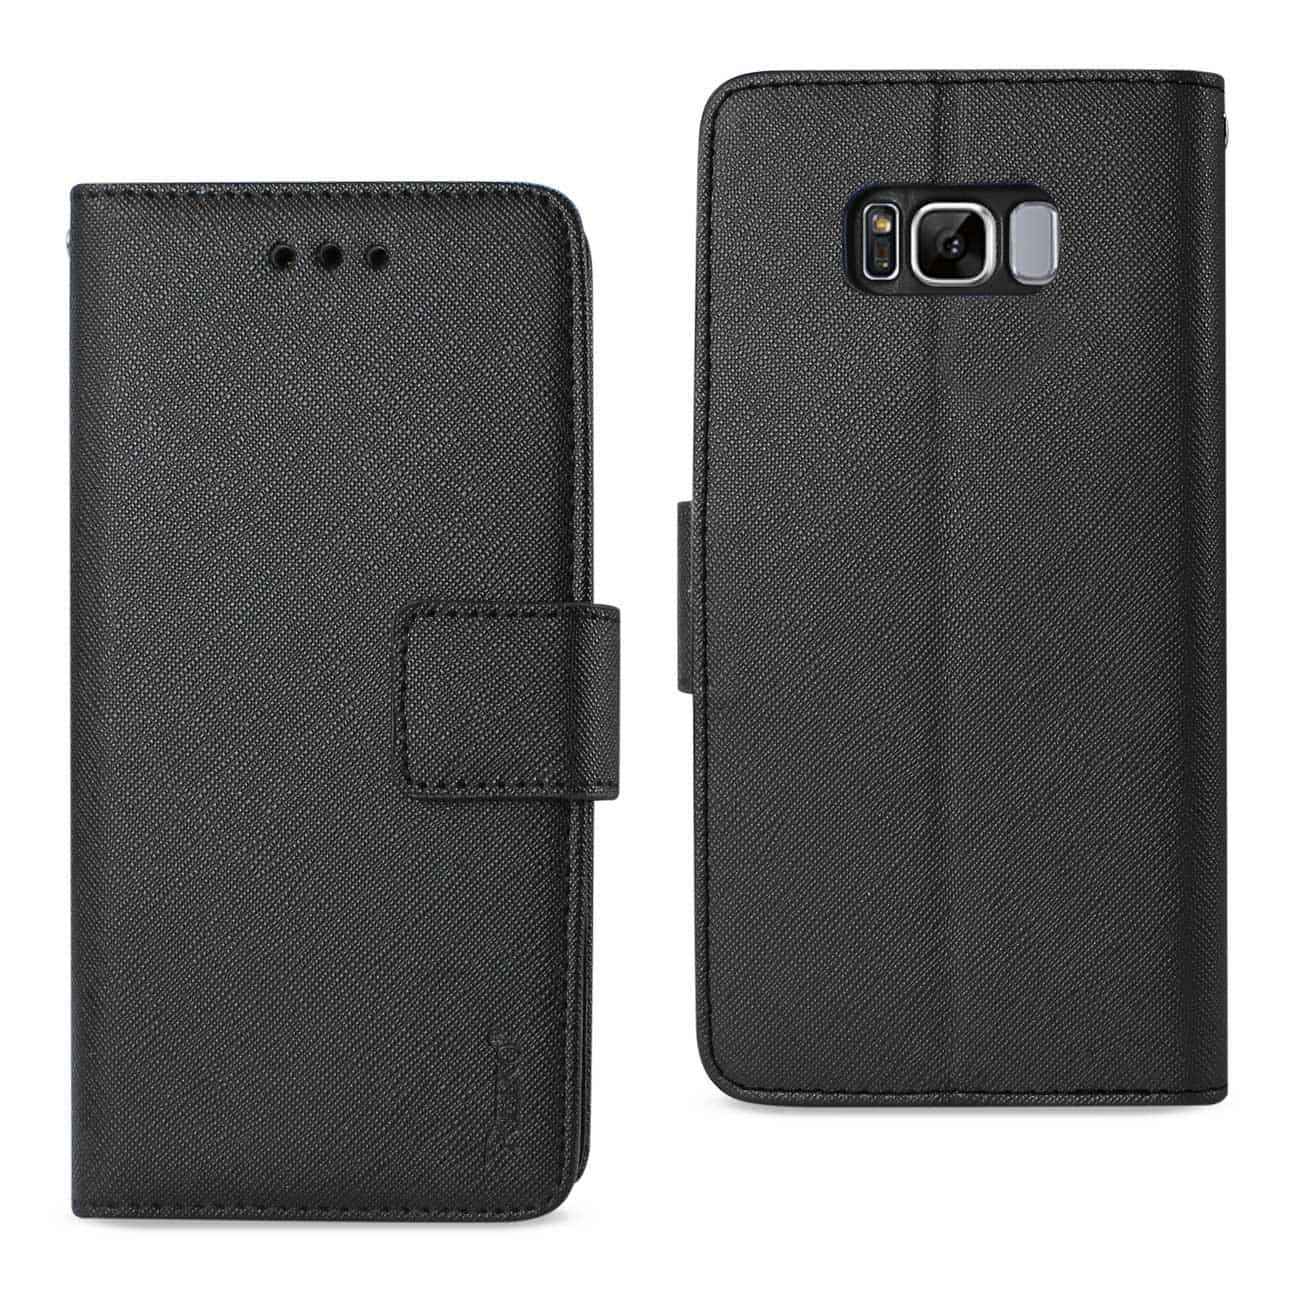 SAMSUNG GALAXY S8 EDGE/ S8 PLUS 3-IN-1 WALLET CASE IN BLACK